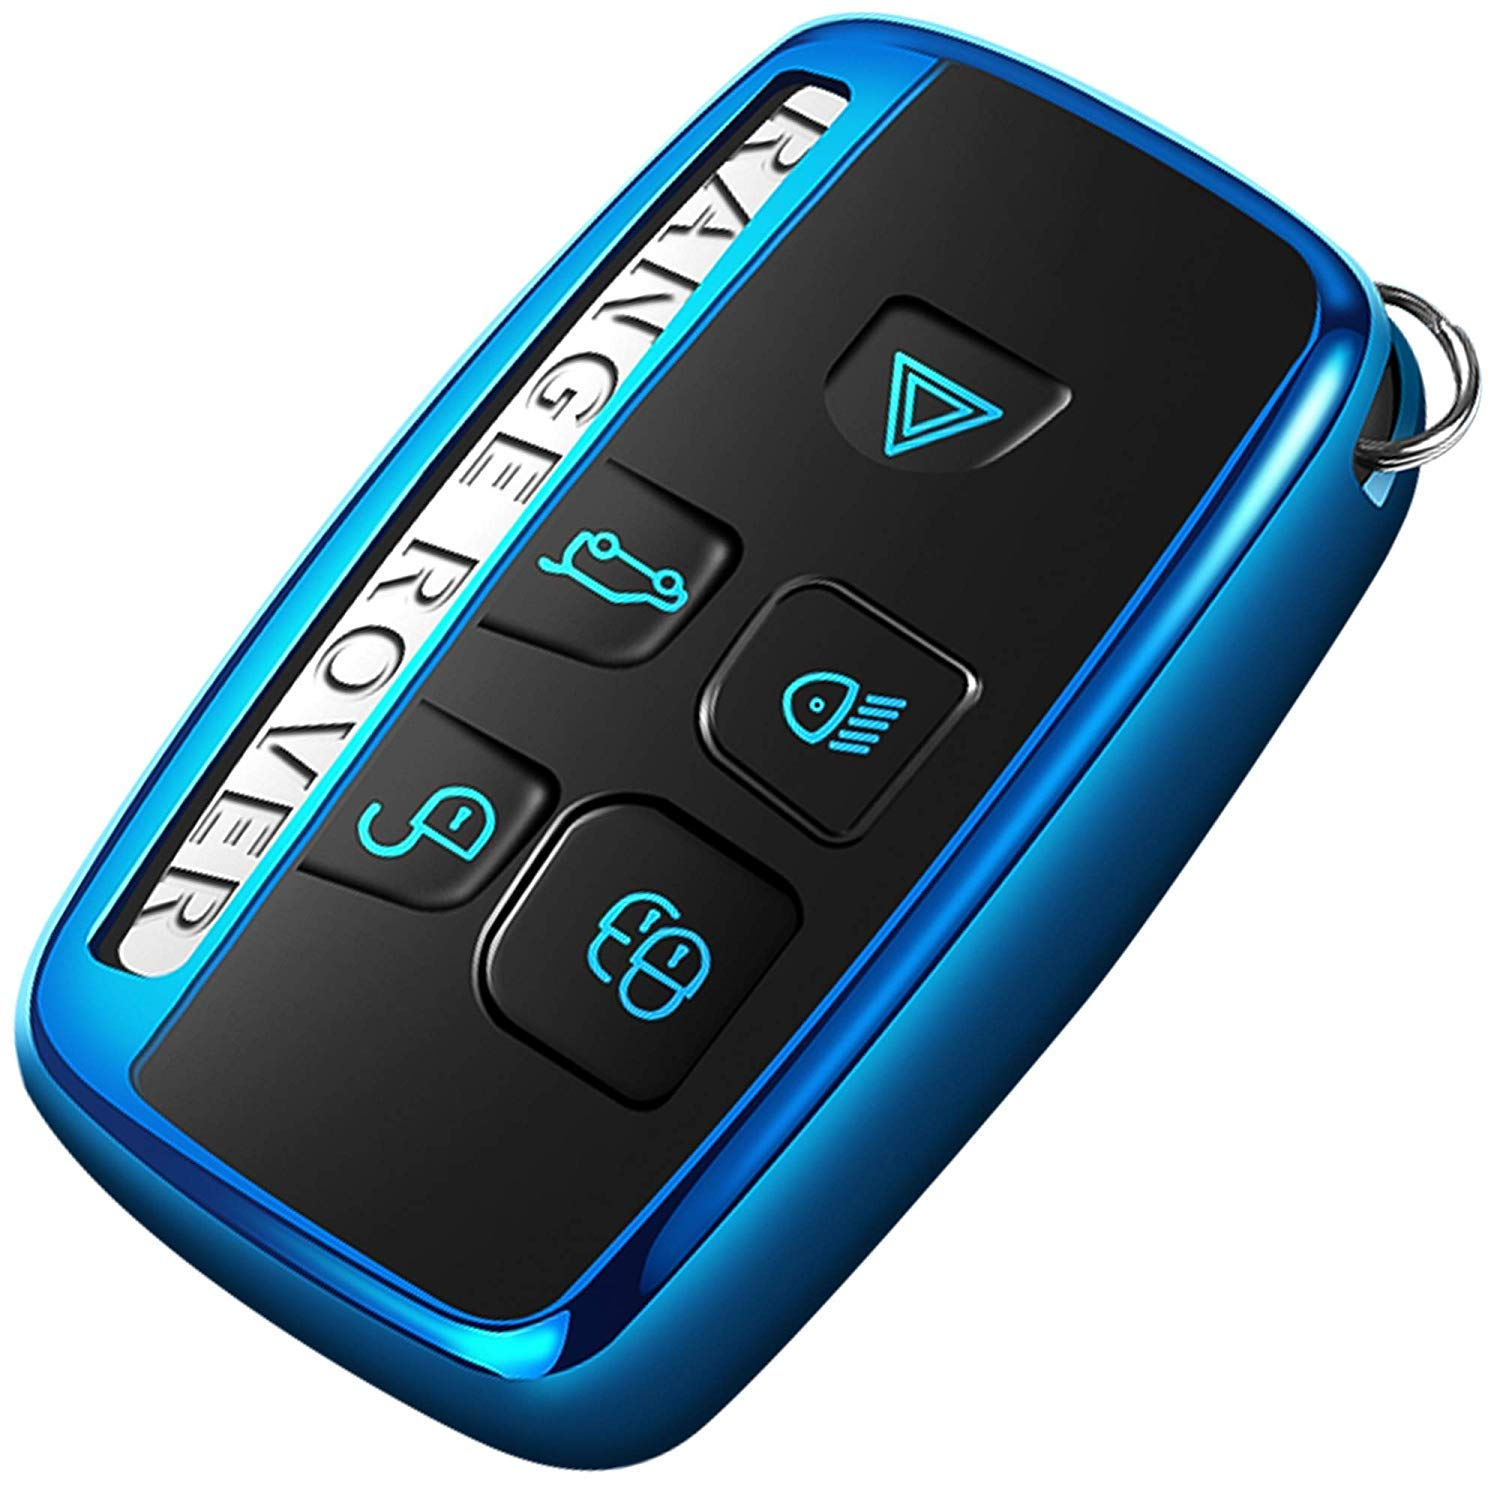 ontto Car Key Cover for Land Rover Range Rover Sport Evoque Velar Discovery 5 2018 2019 Soft Silicone Key Fob Cover Holder Protector Key Case Keyring Blue